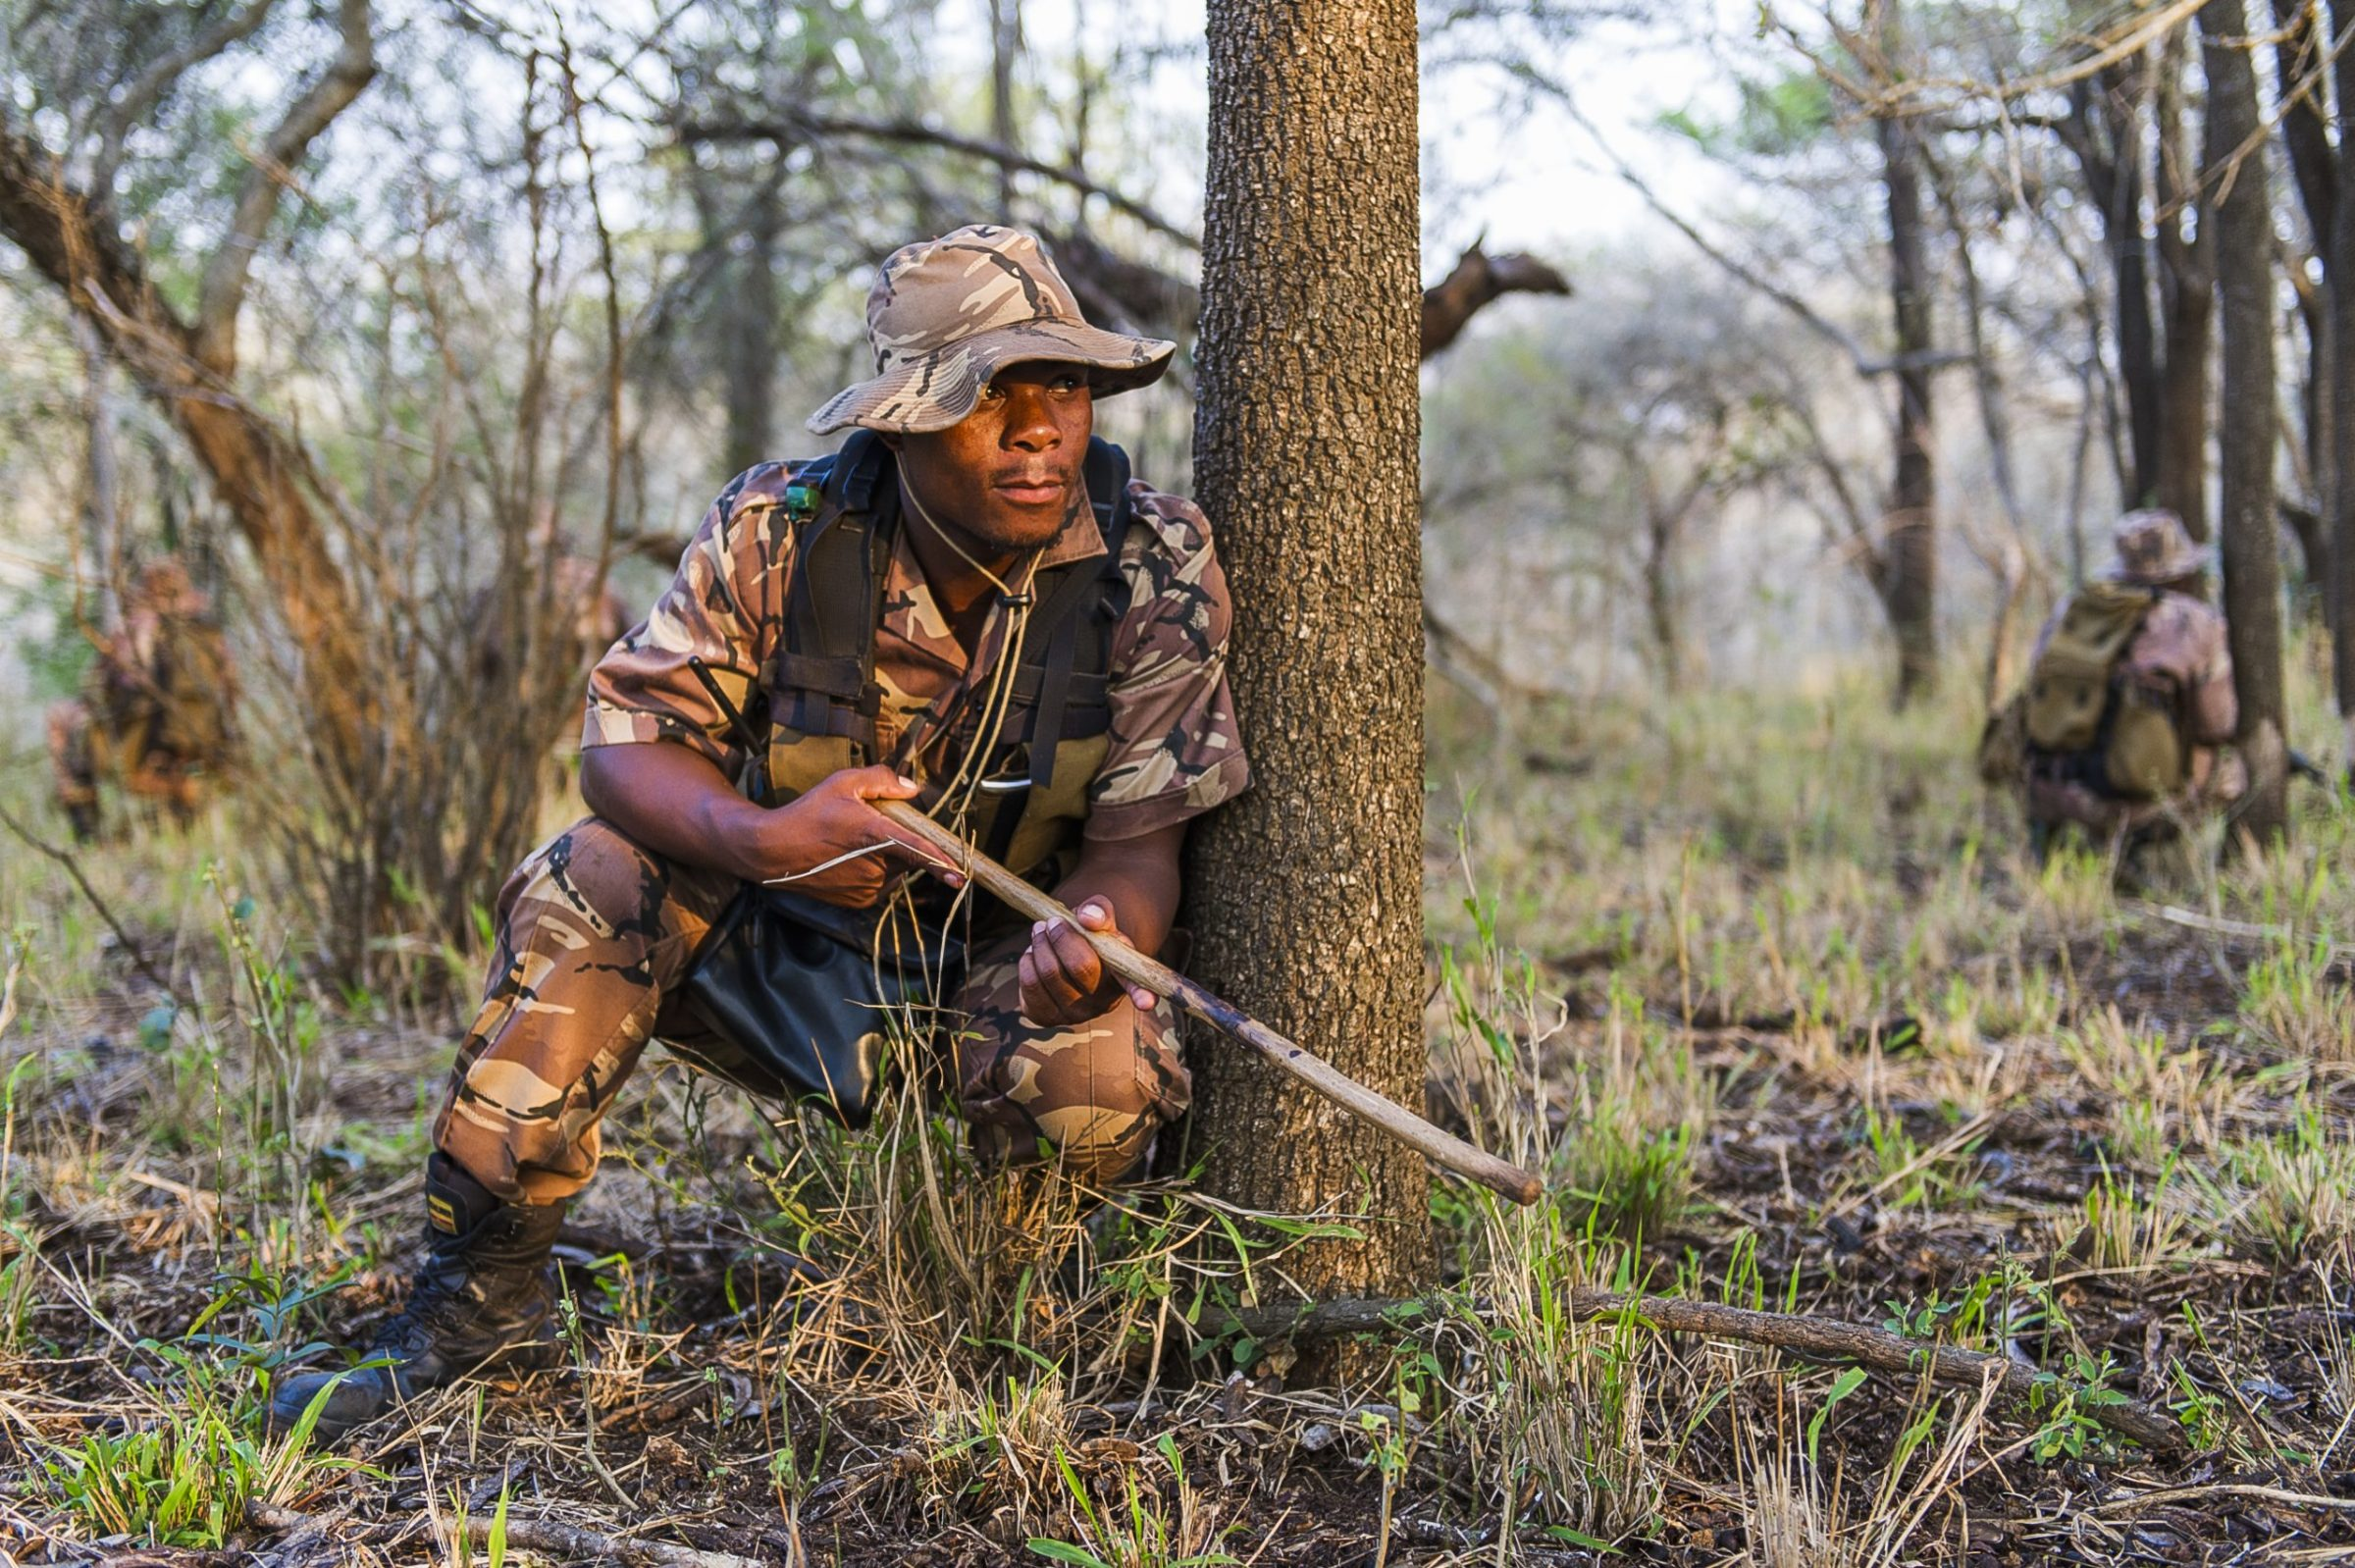 Field rangers undergo anti-poaching training in the Somkhanda Private Game Reserve, KwaZulu Natal, South Africa.